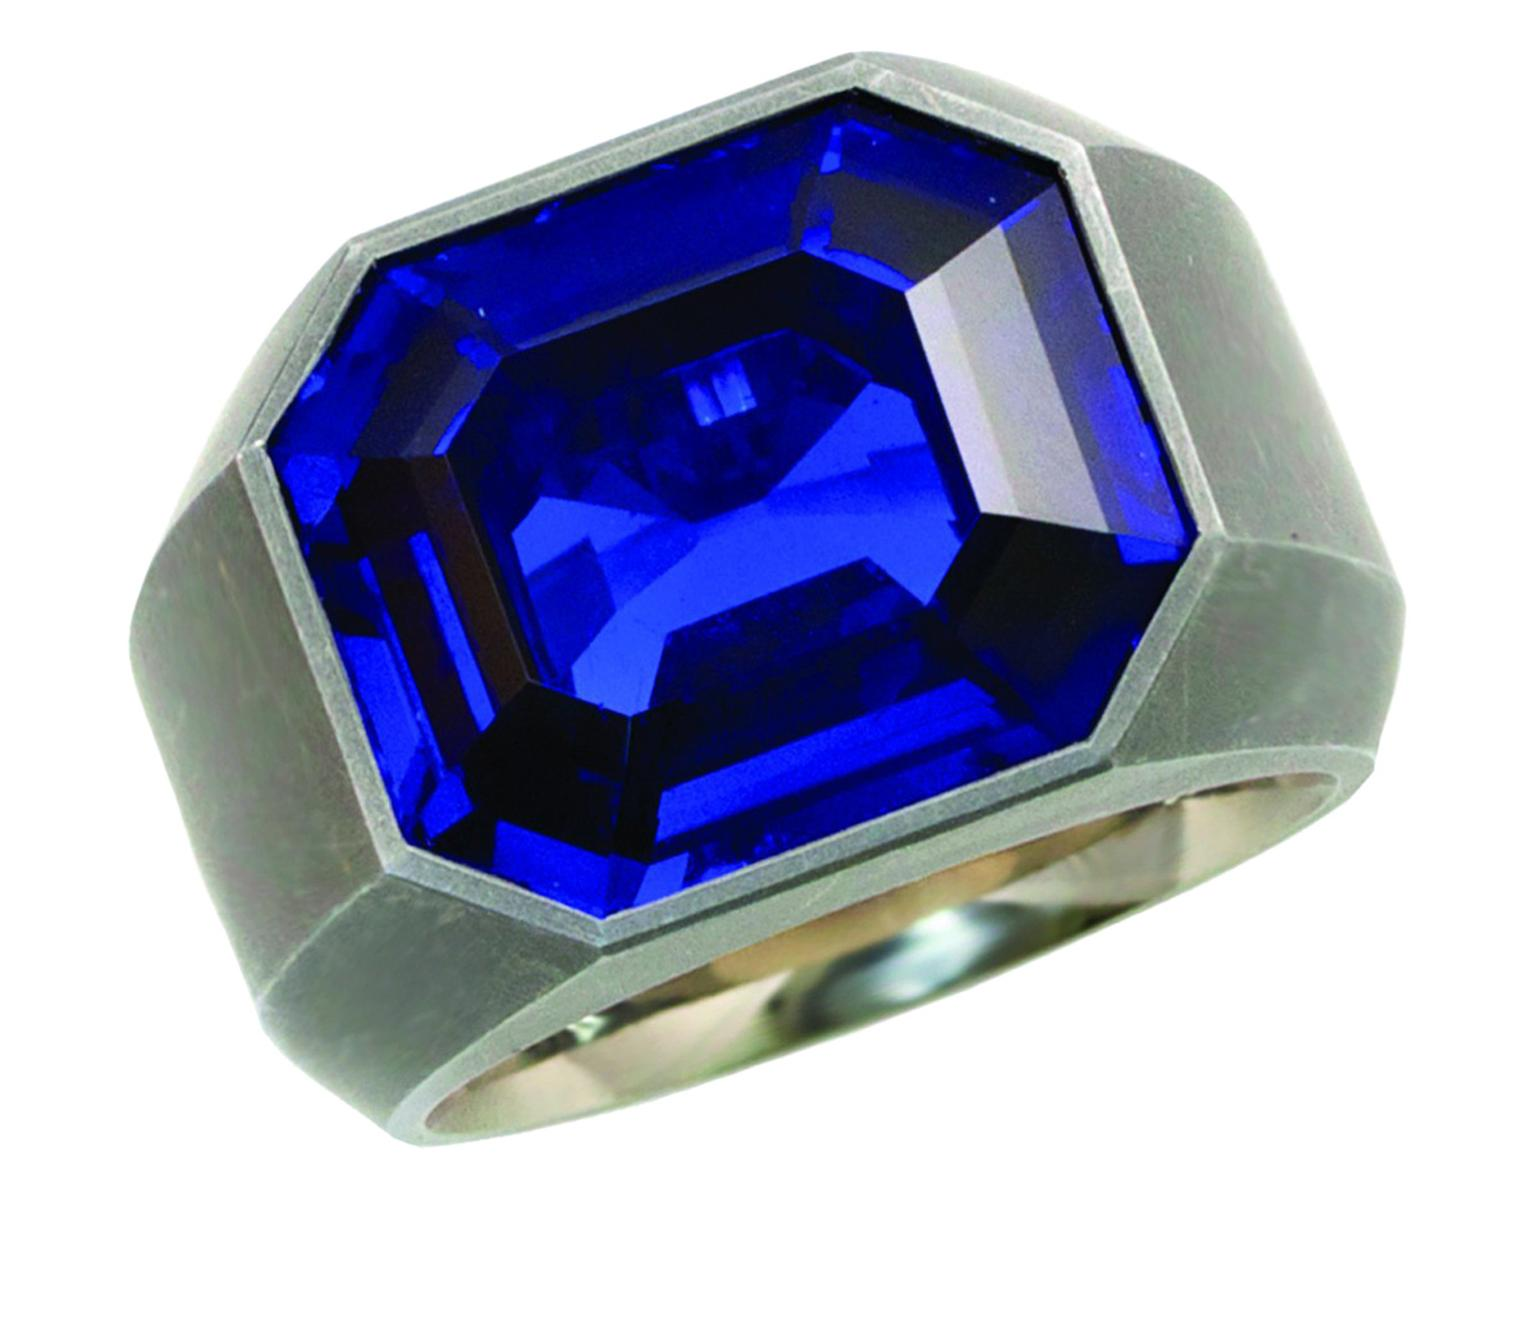 Hemmerle exceptional Royal Blue Burma Sapphire (No Heat) Ring_20140203_Zoom